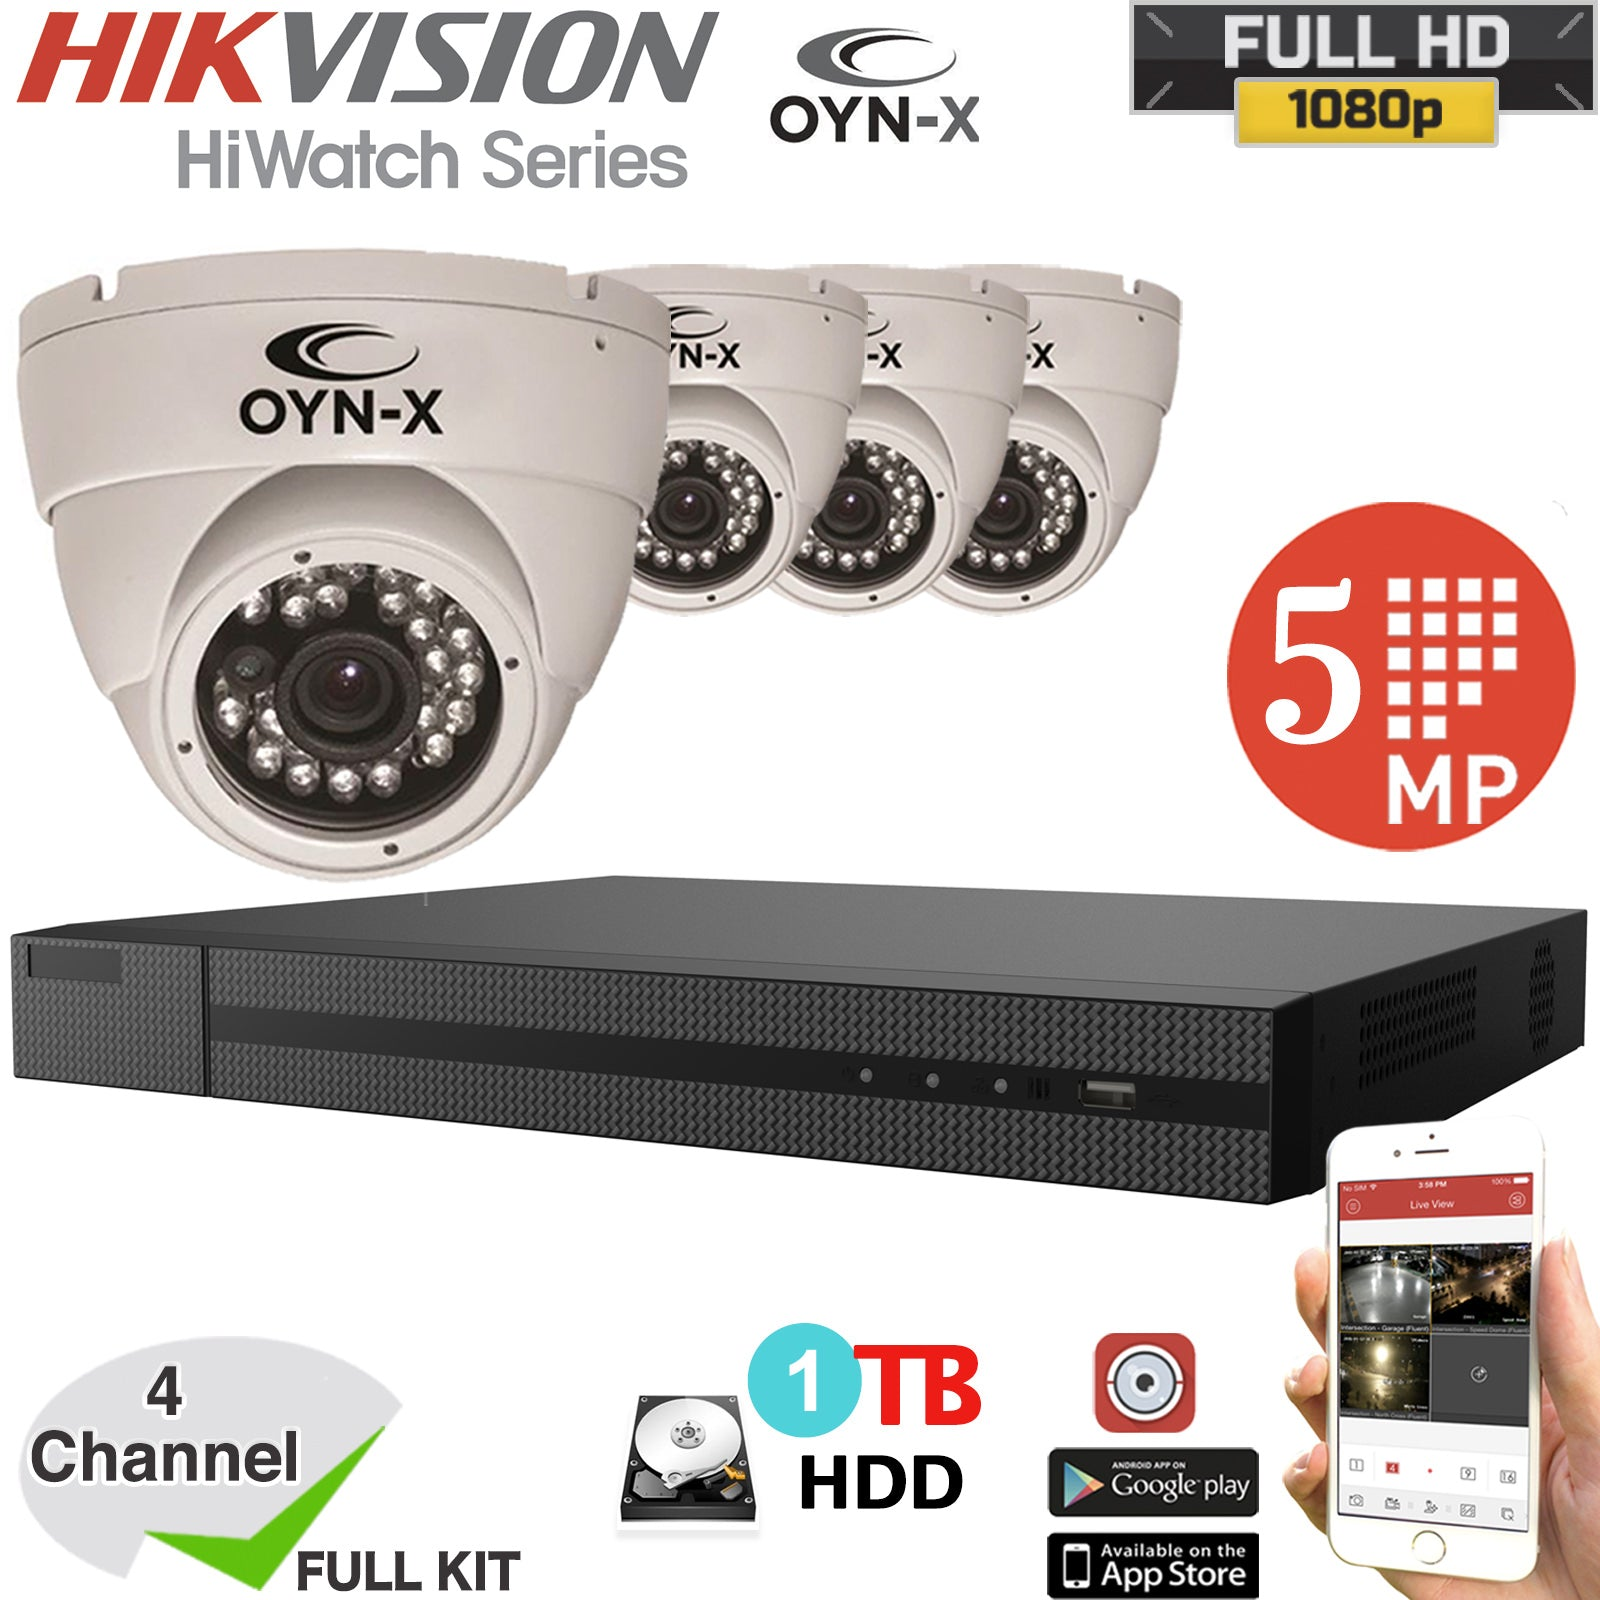 Hikvision Hiwatch 4CH DVR 5MP OYN-X Camera CCTV Security KIT 1TB HDD